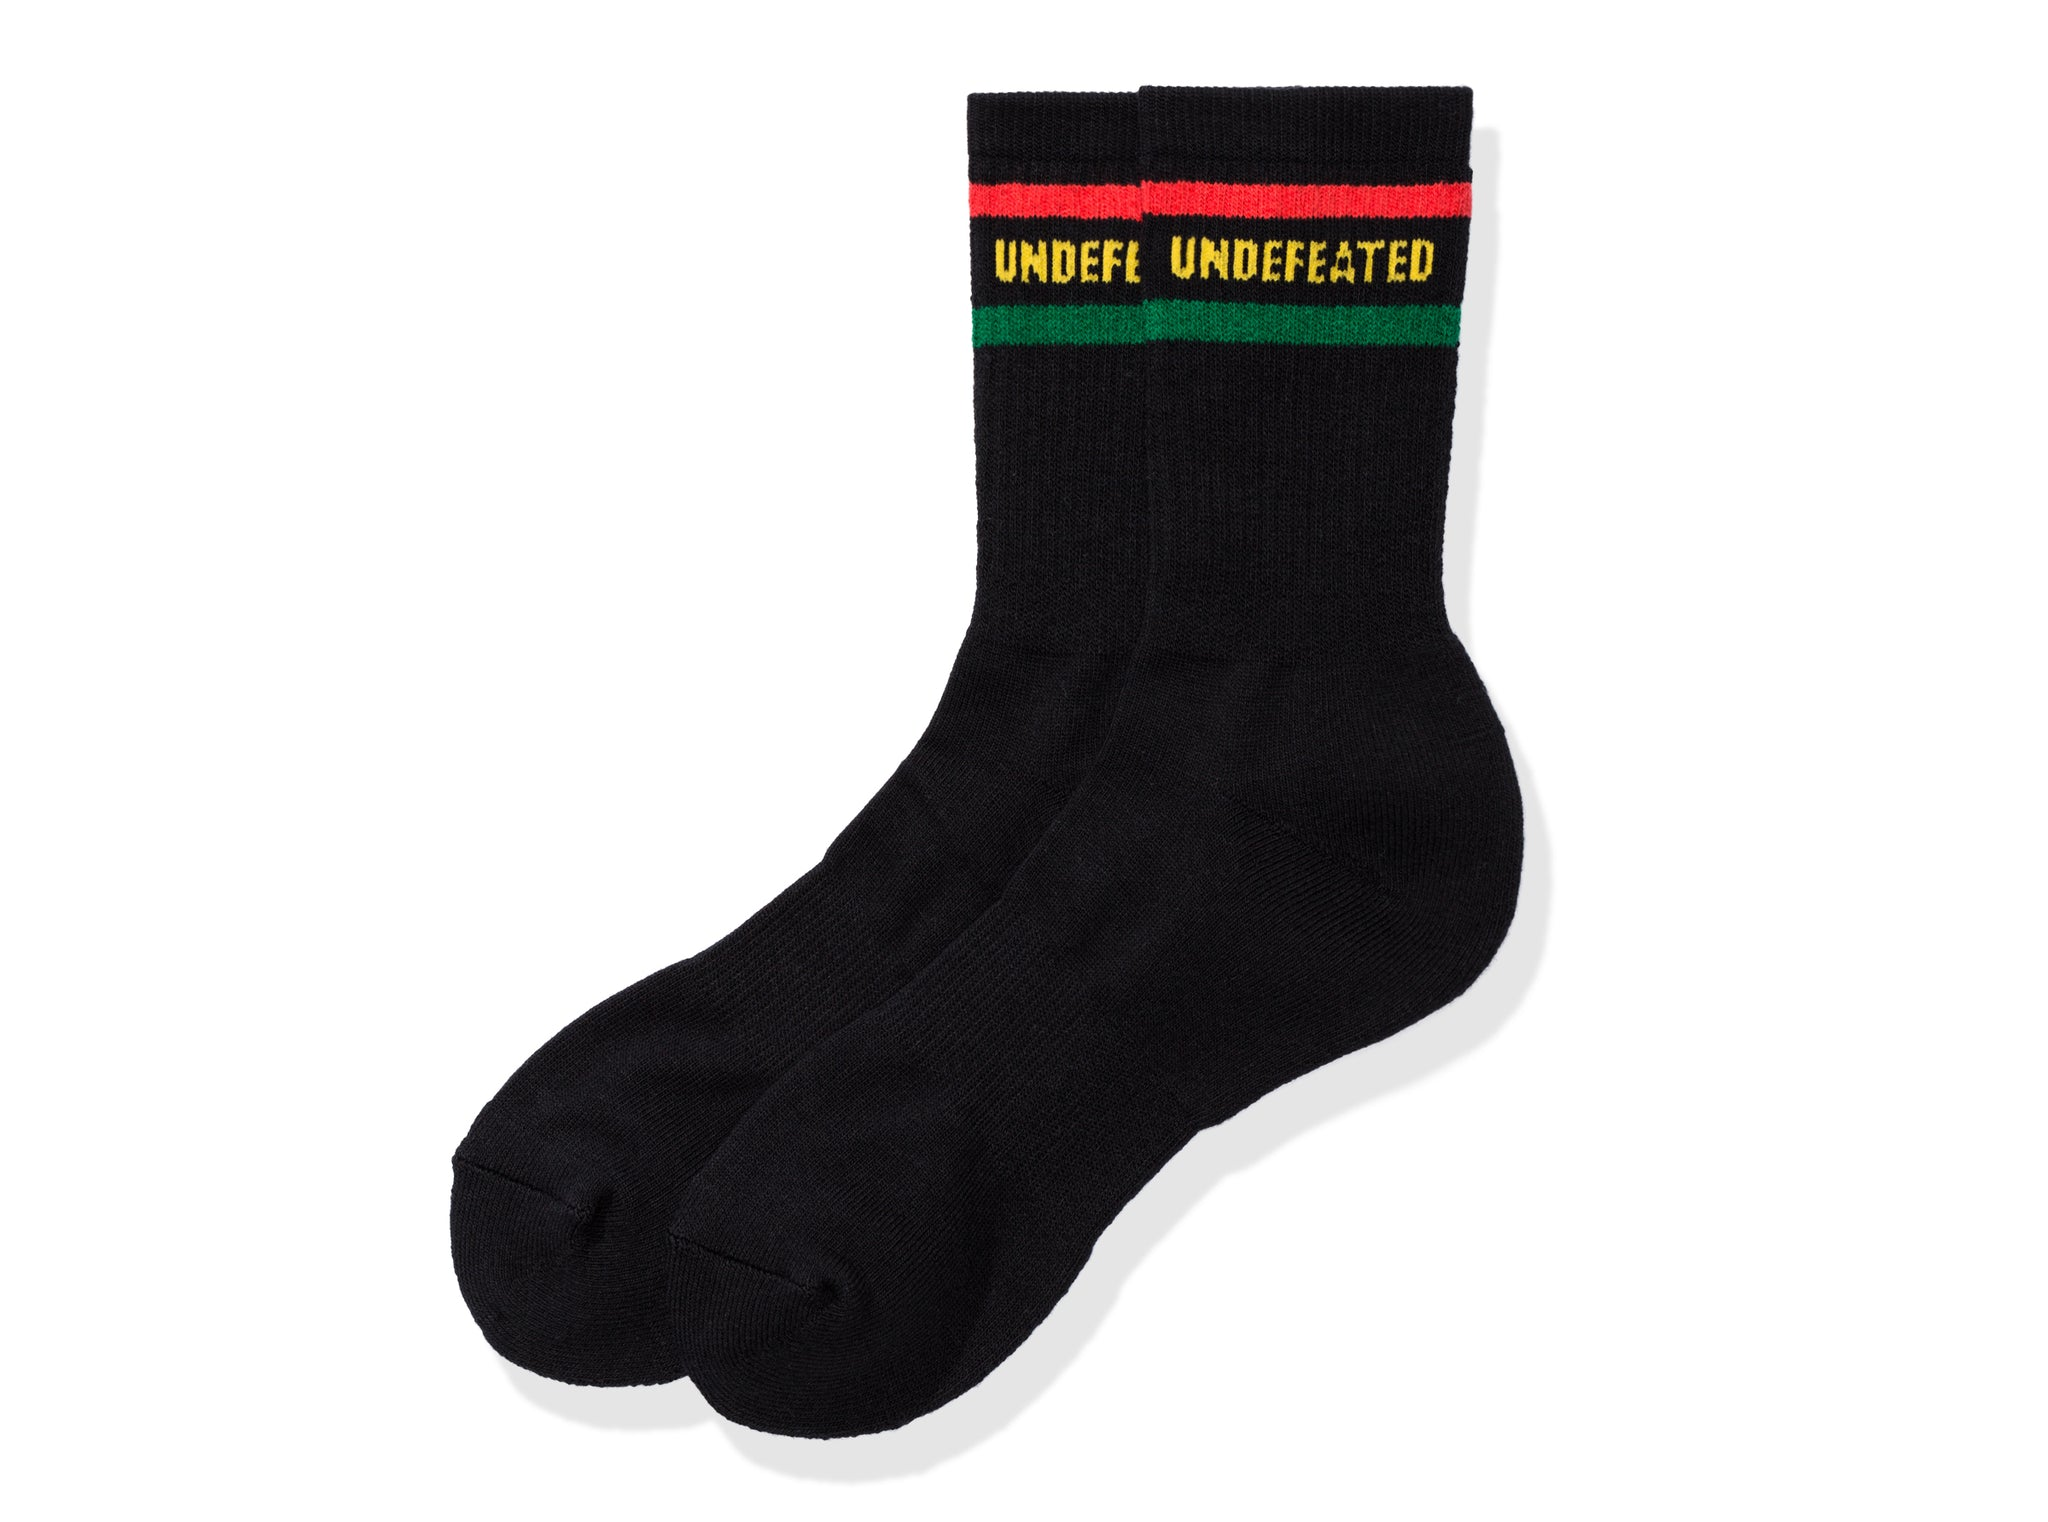 UNDEFEATED LOGO SOCK - CREW